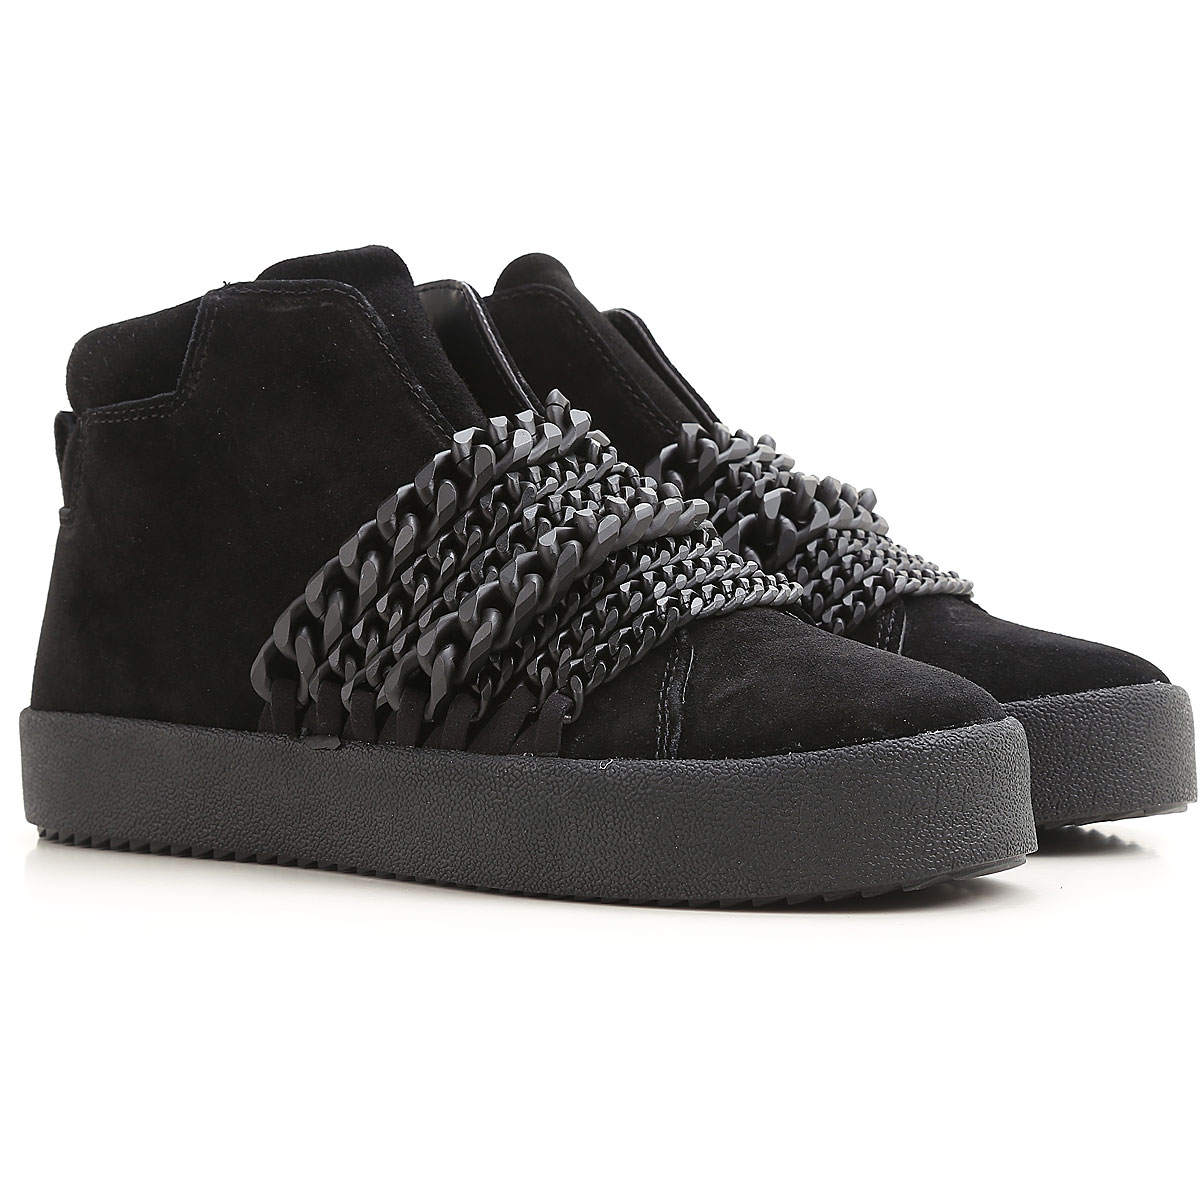 Kendall Kylie Slip on Sneakers for Women On Sale in Outlet, Black, Suede leather, 2019, 6 6.5 8.5